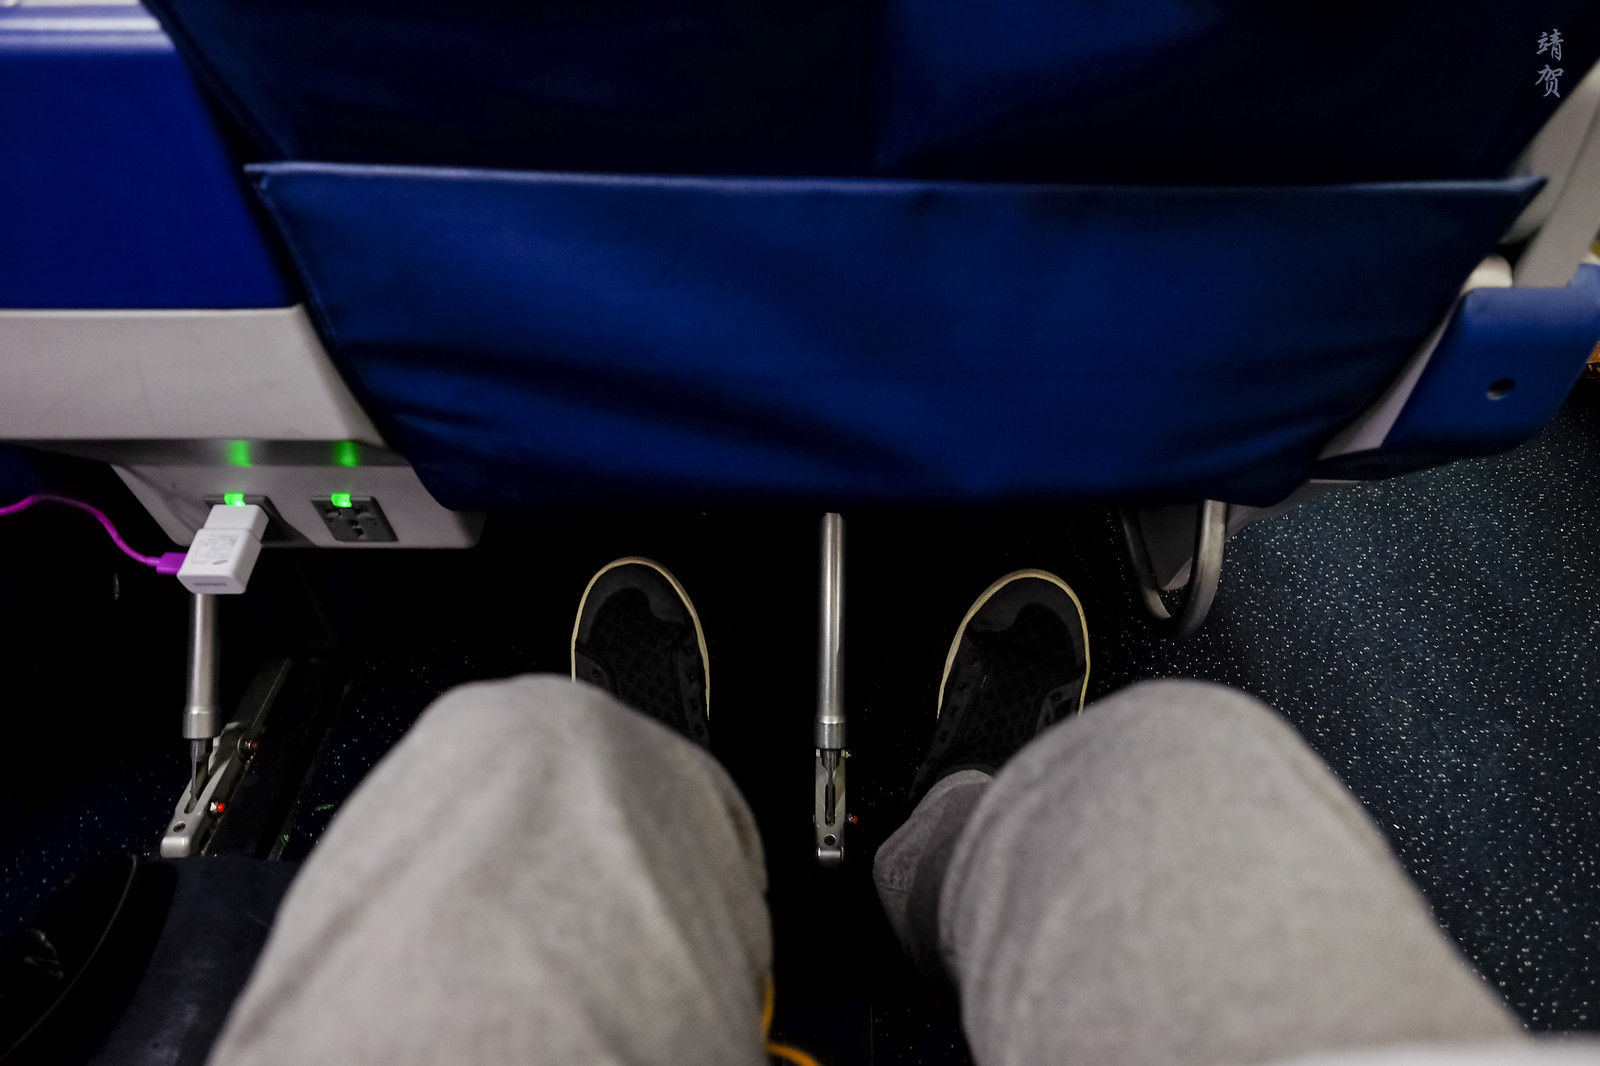 Domestic first class legroom on the 737-900